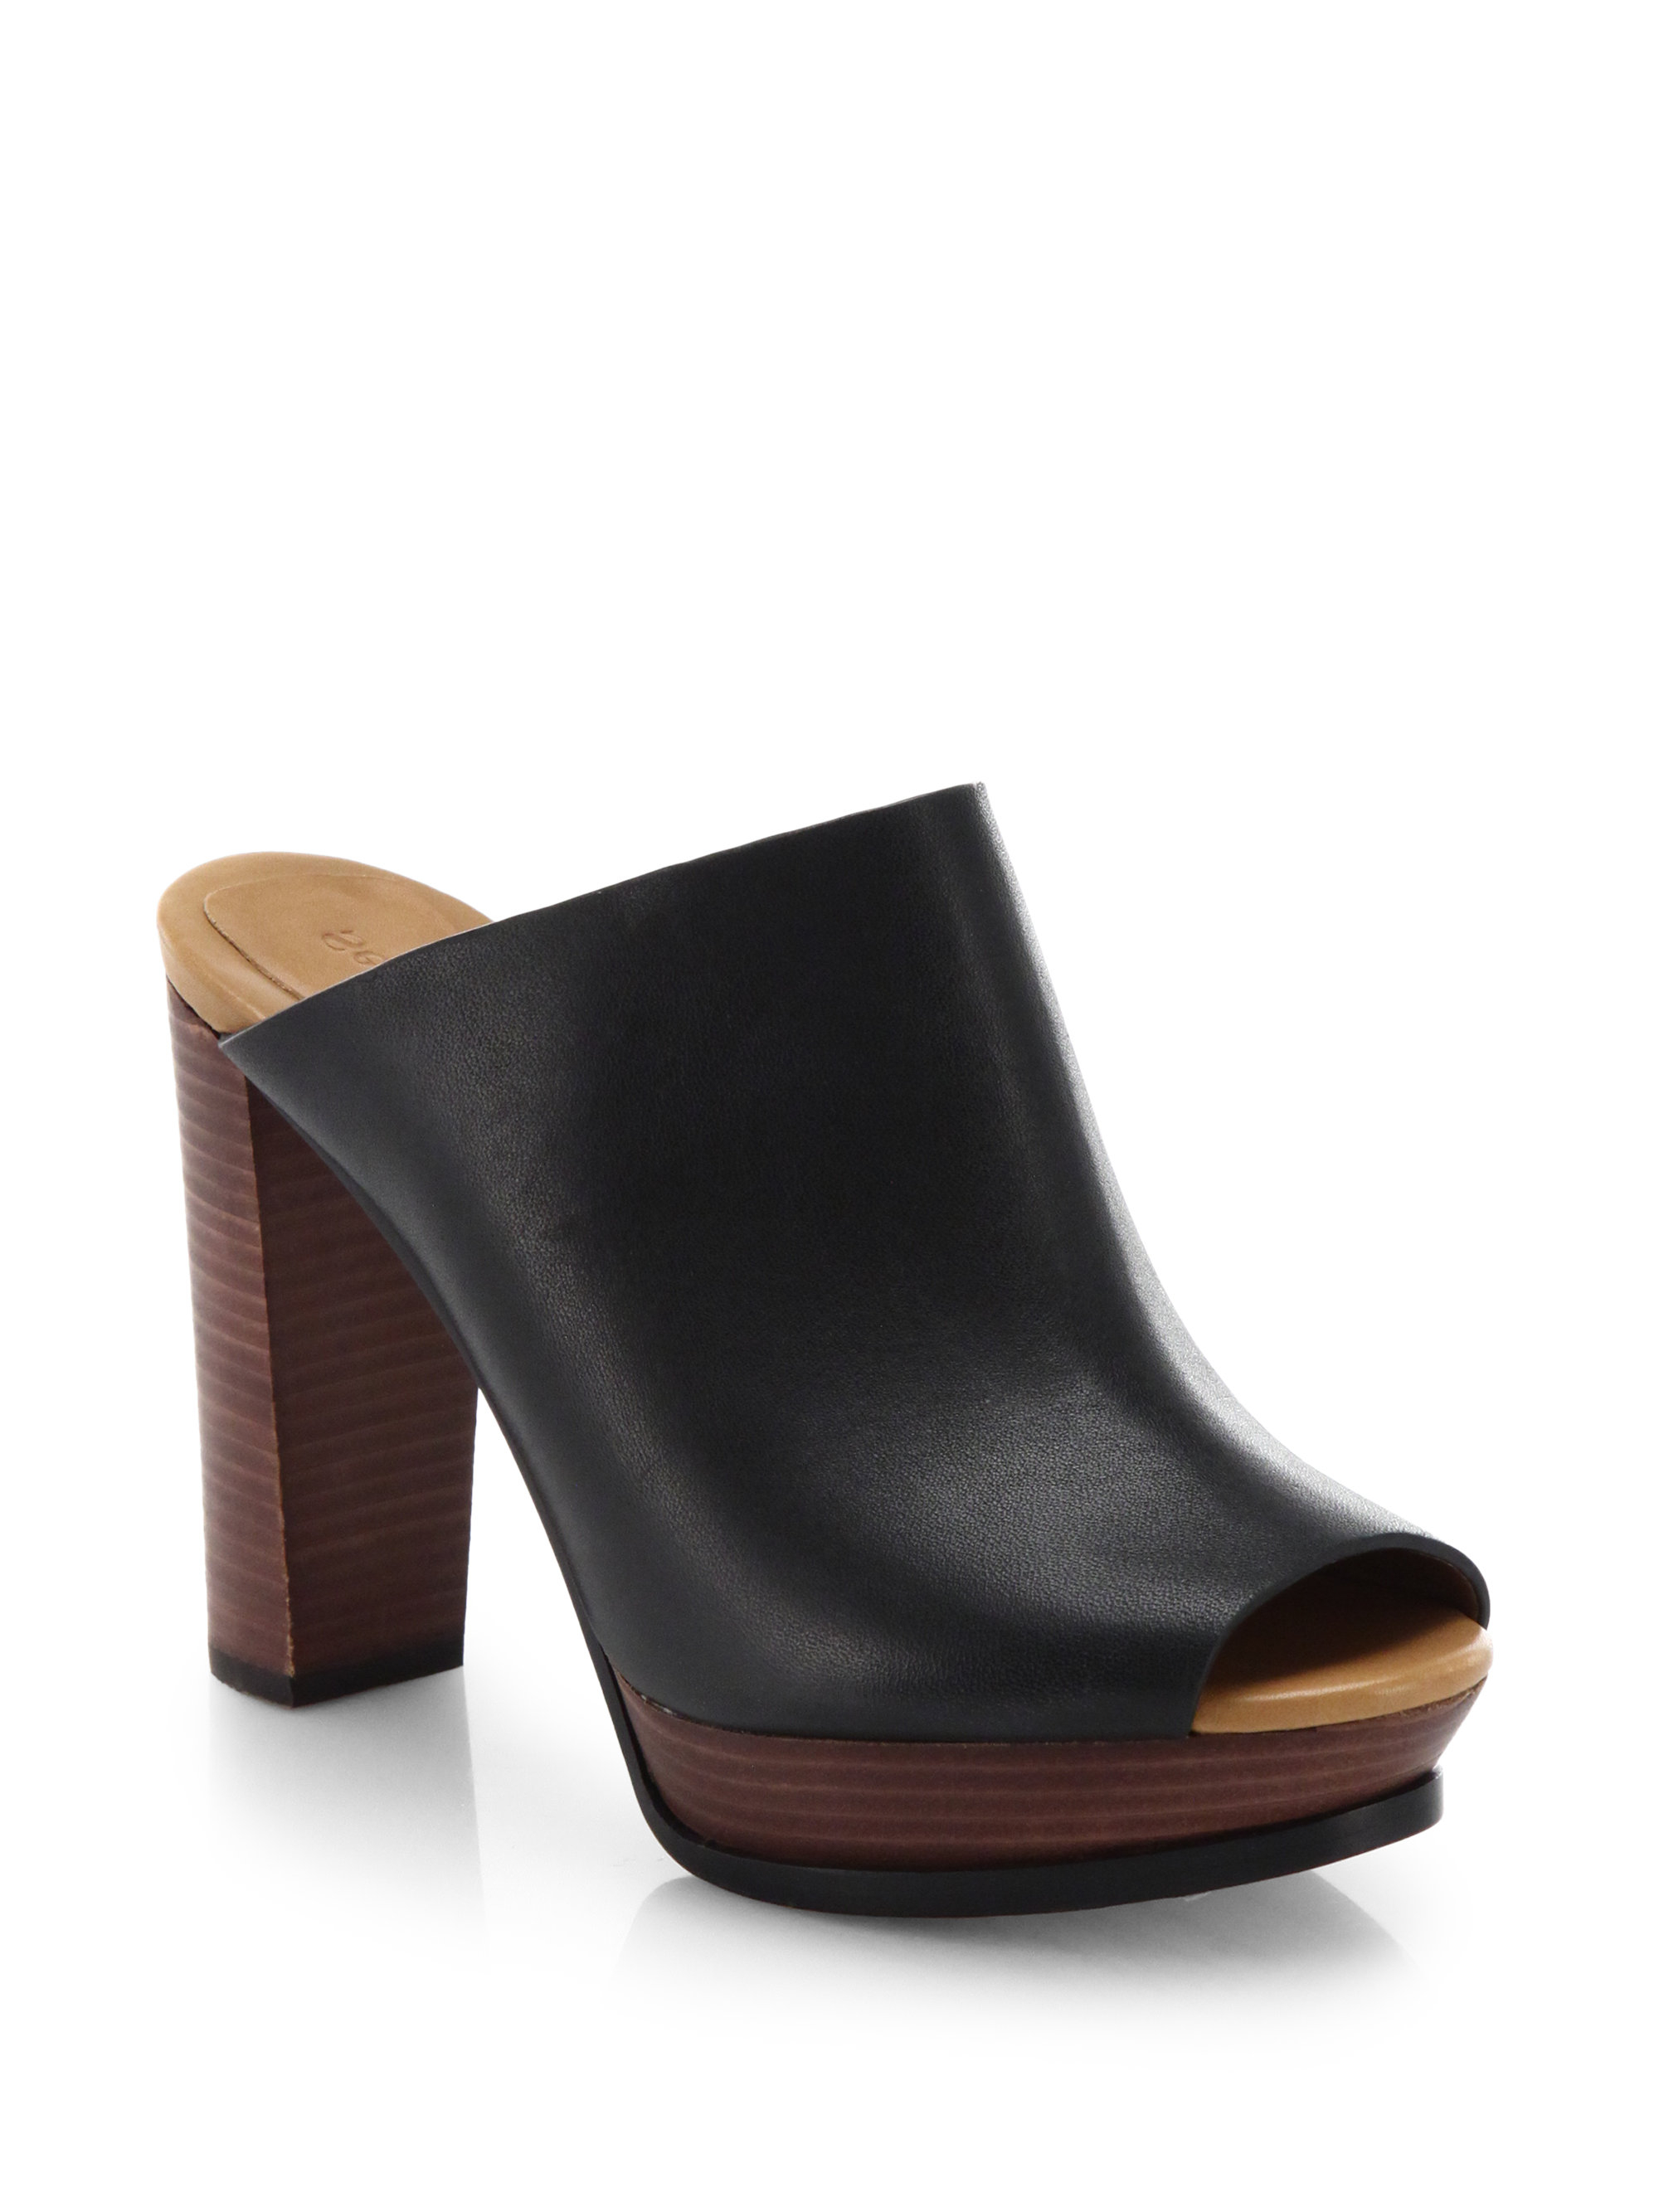 0bb278011f4f4 See By Chloé Leather Open-Toe Mules in Black - Lyst